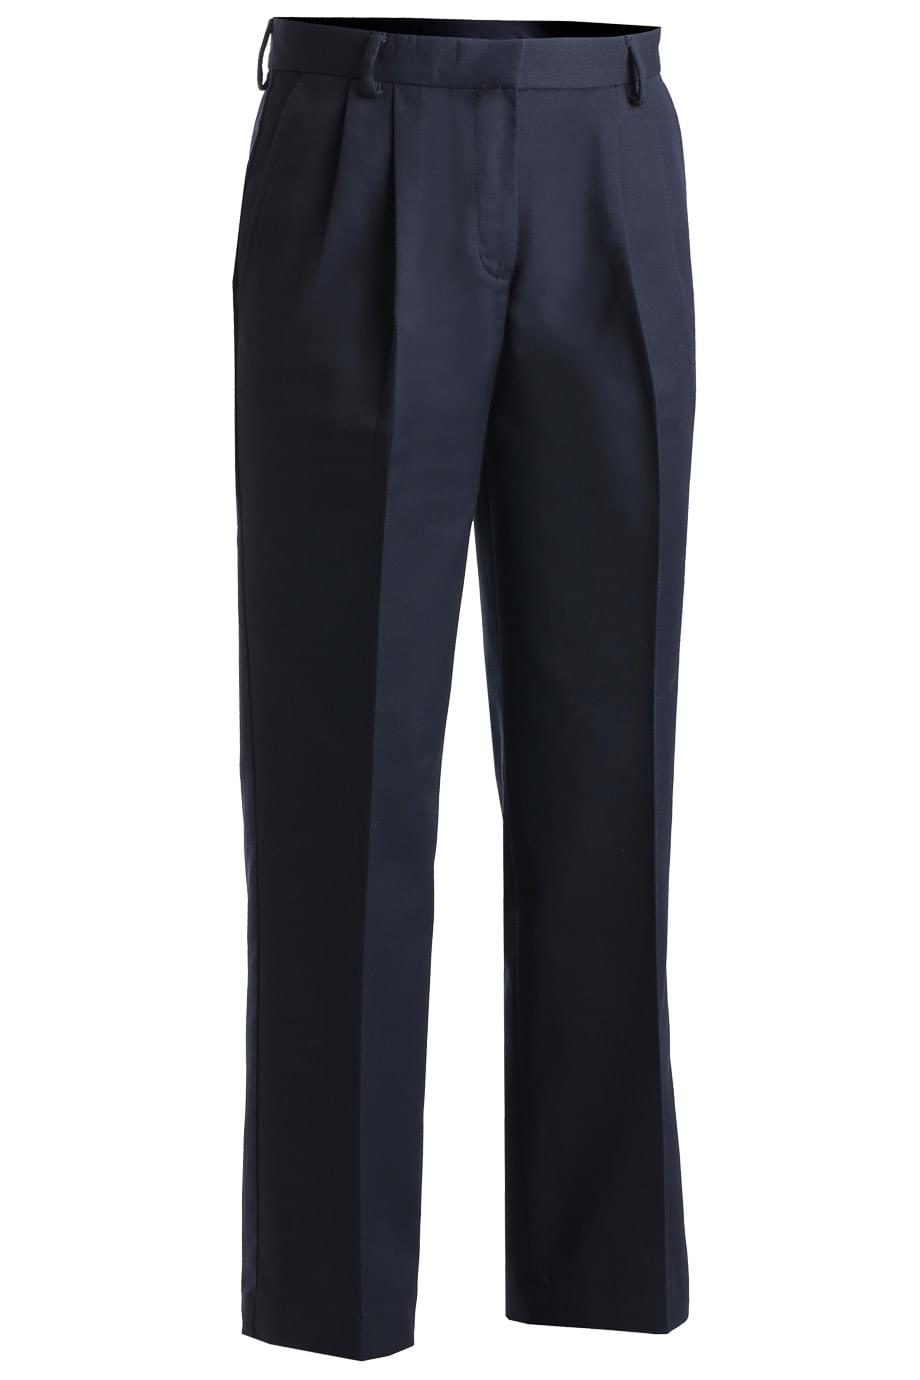 LADIES' BUSINESS CASUAL PLEATED CHINO PANT